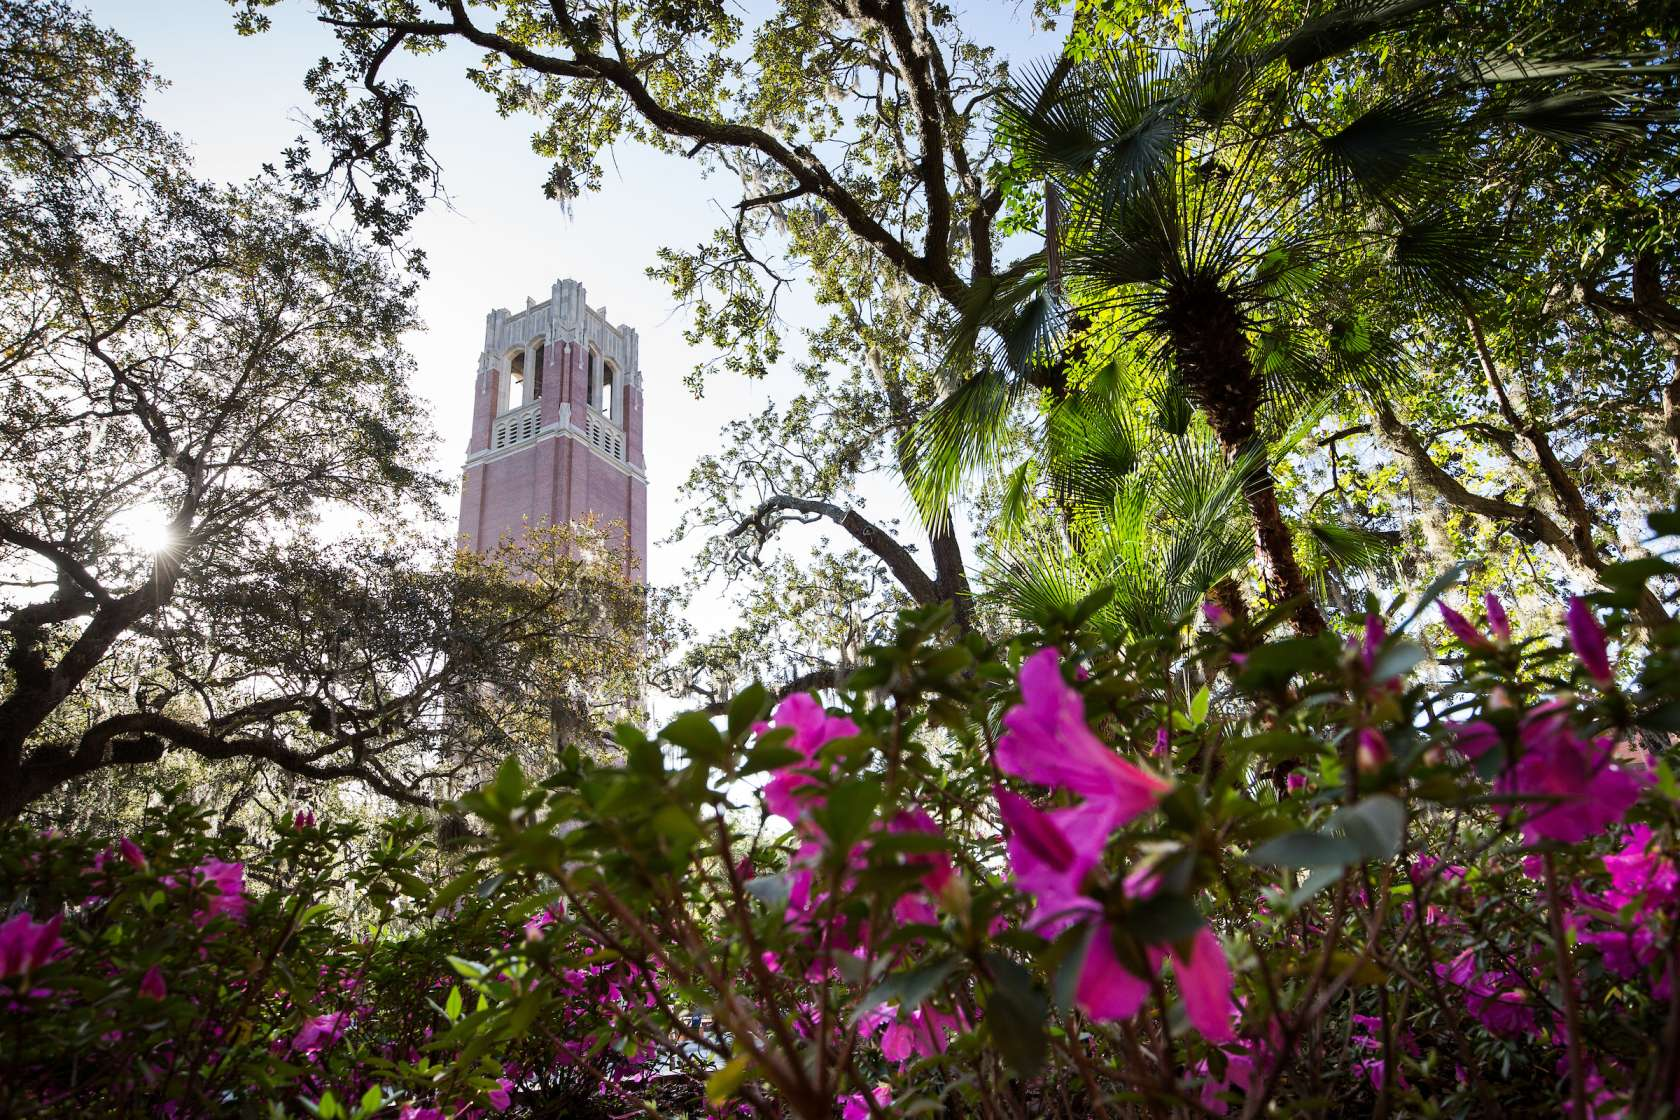 University of Florida's iconic Century Tower surrounded by spring foliage.